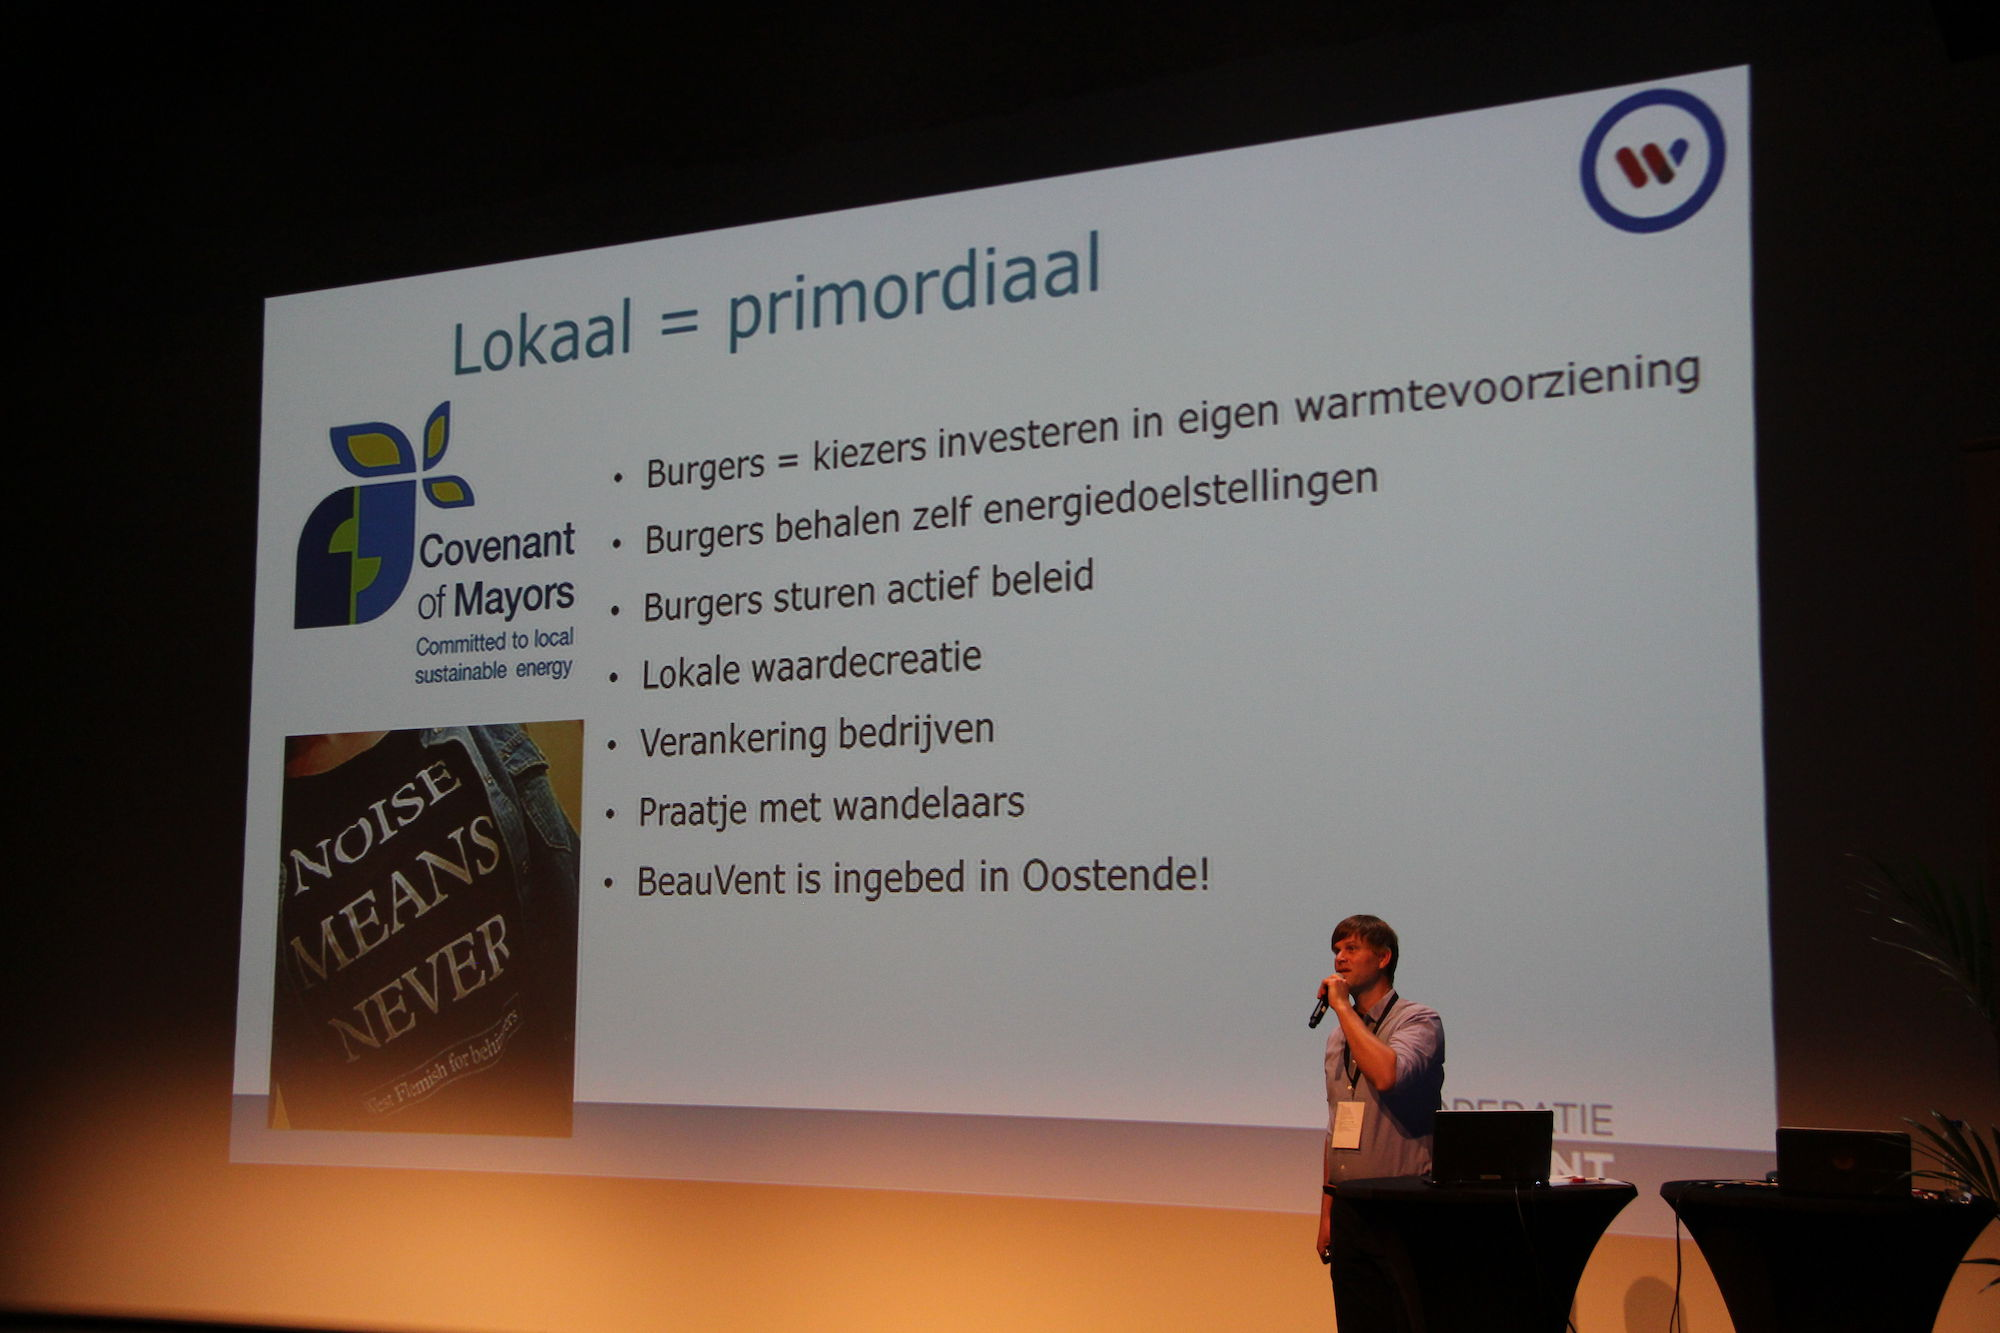 20180424_warmtecongres_VM_00081.JPG